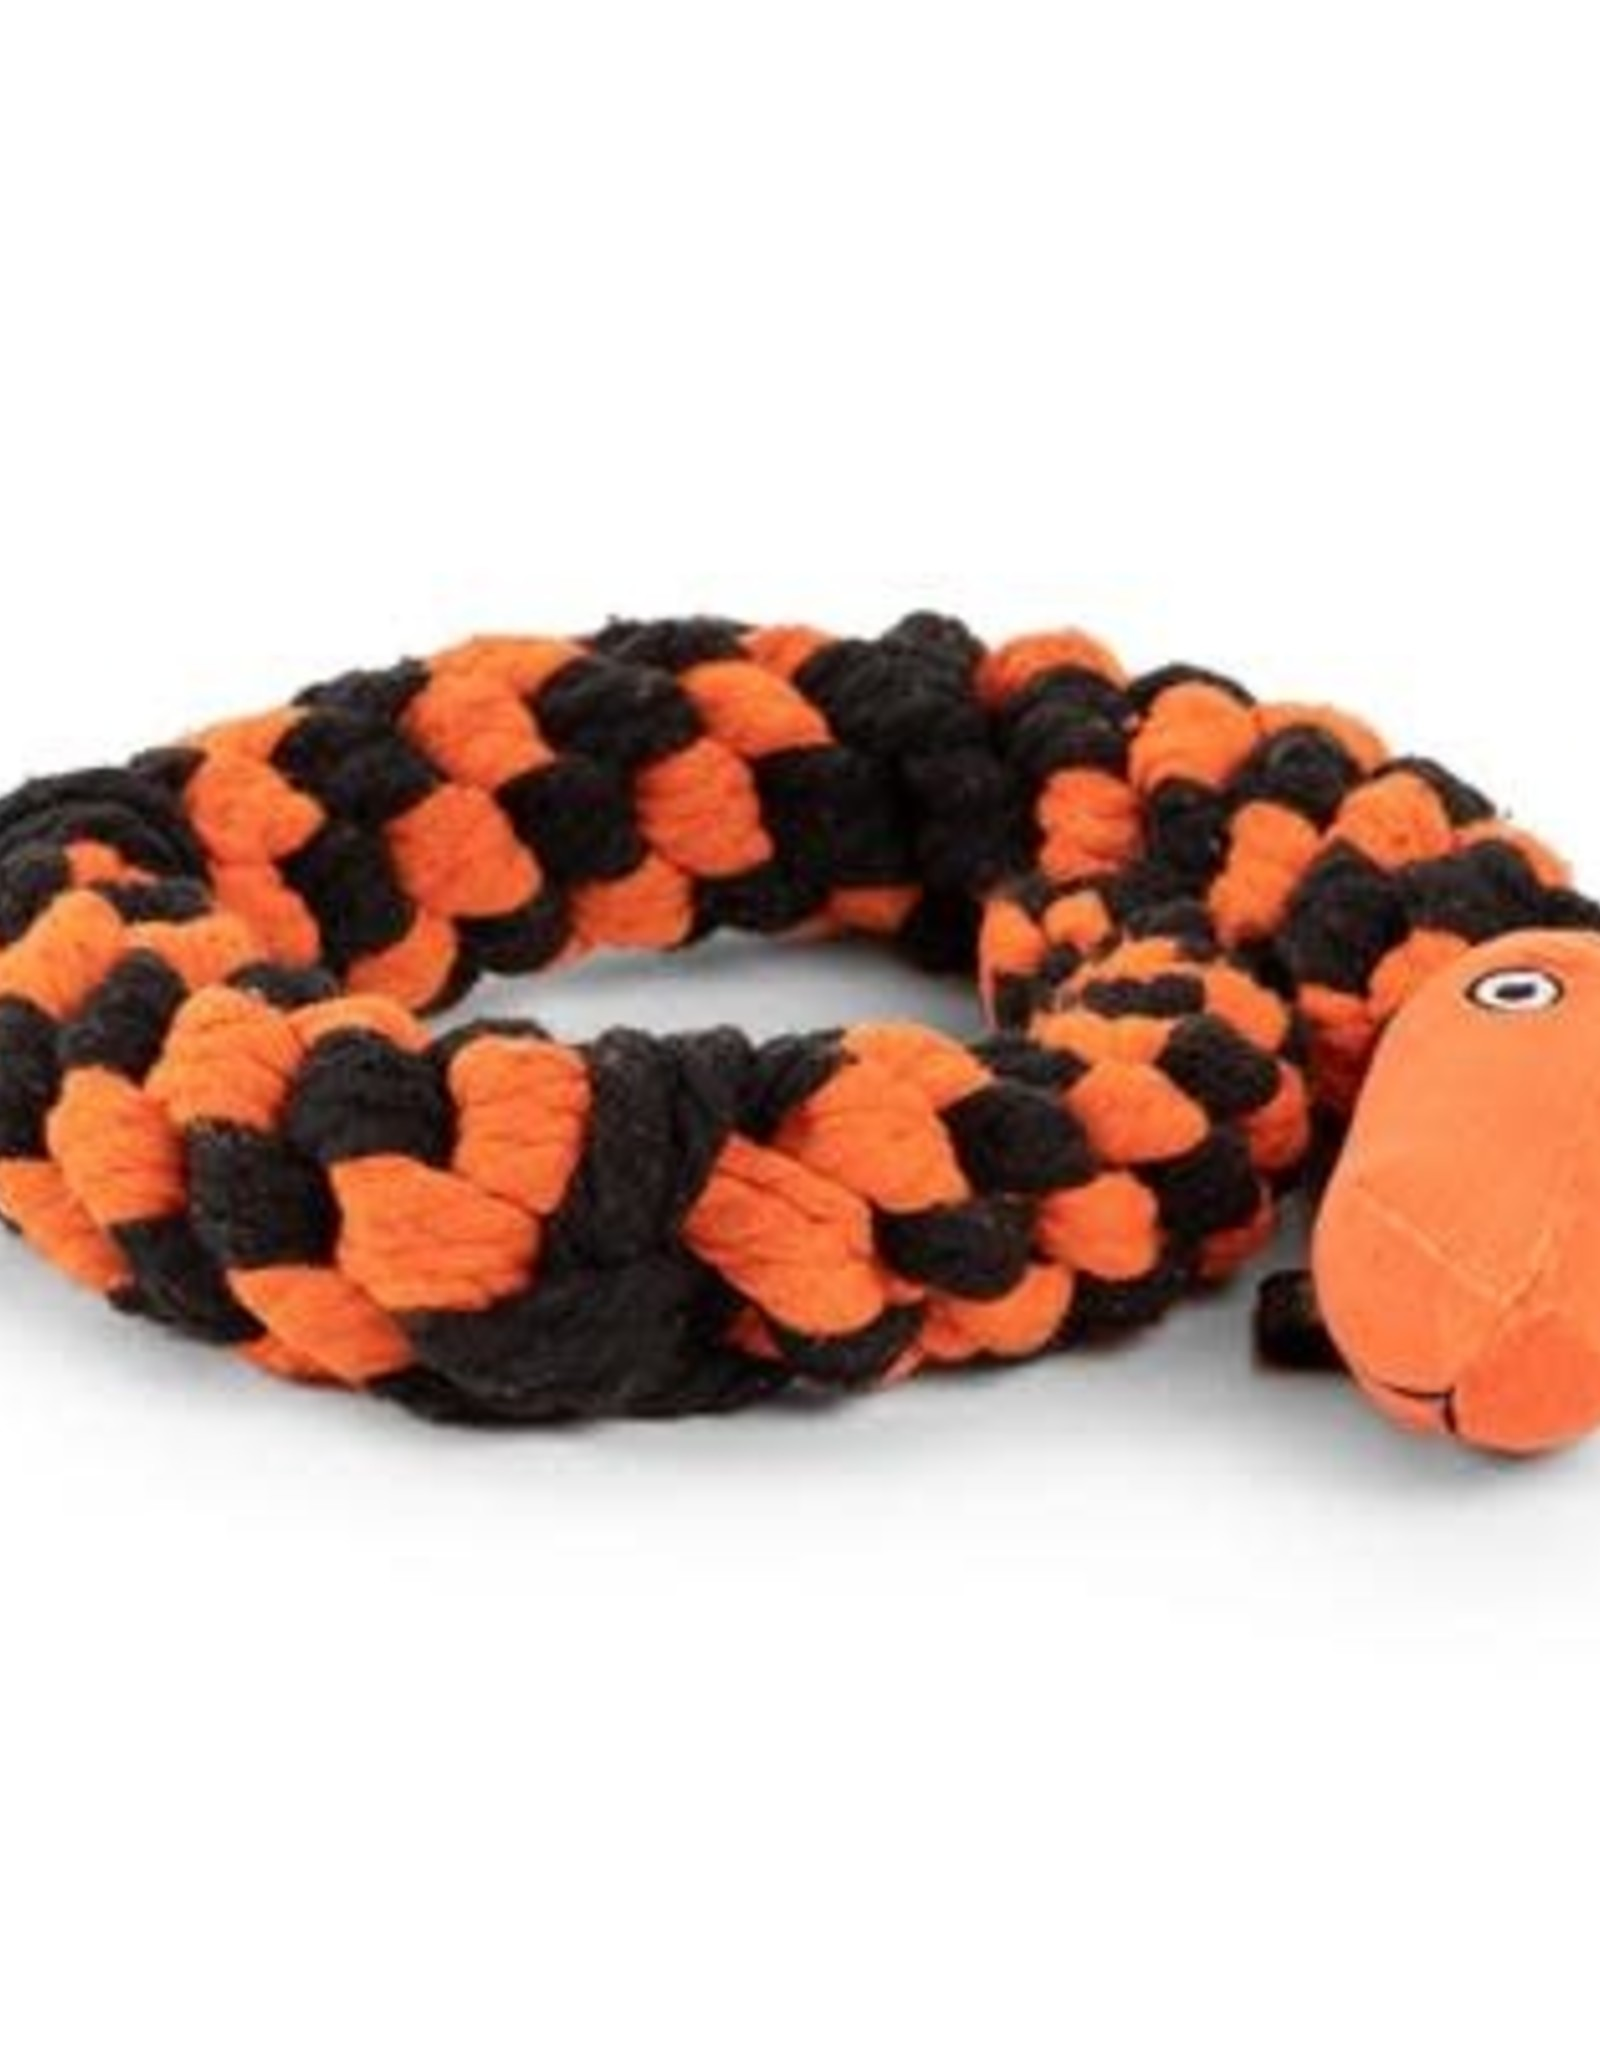 Sentiments Nightmare Before Christmas Snake Rope Toy